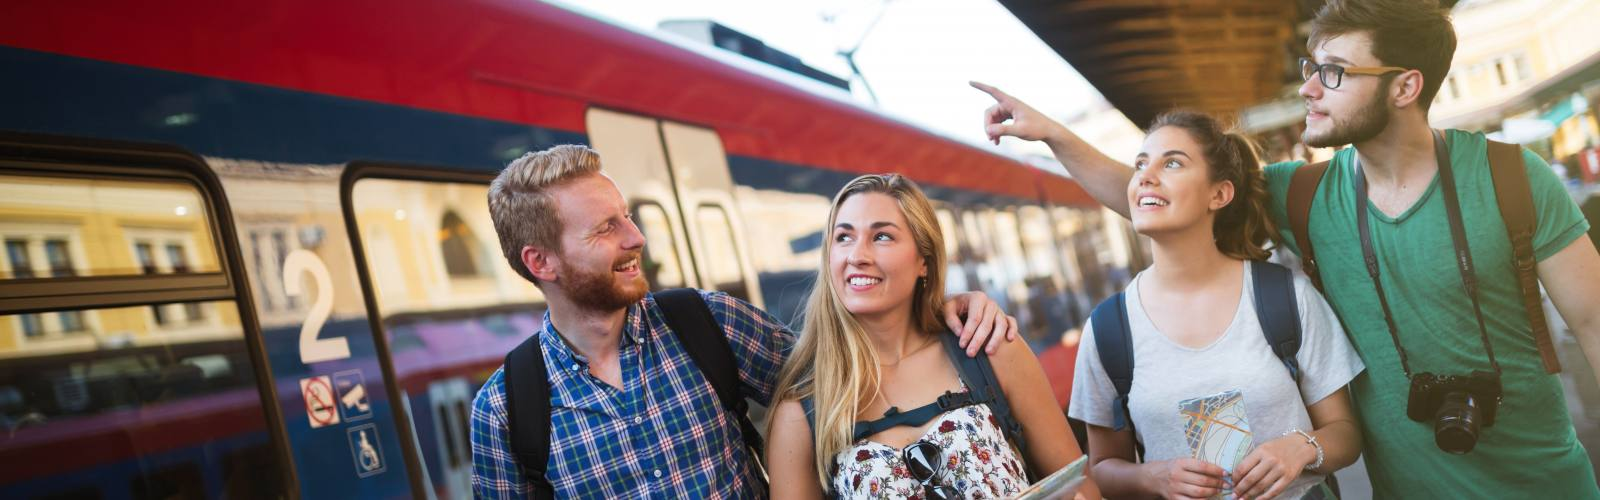 Follow your travel fancies with flexible rail holidays